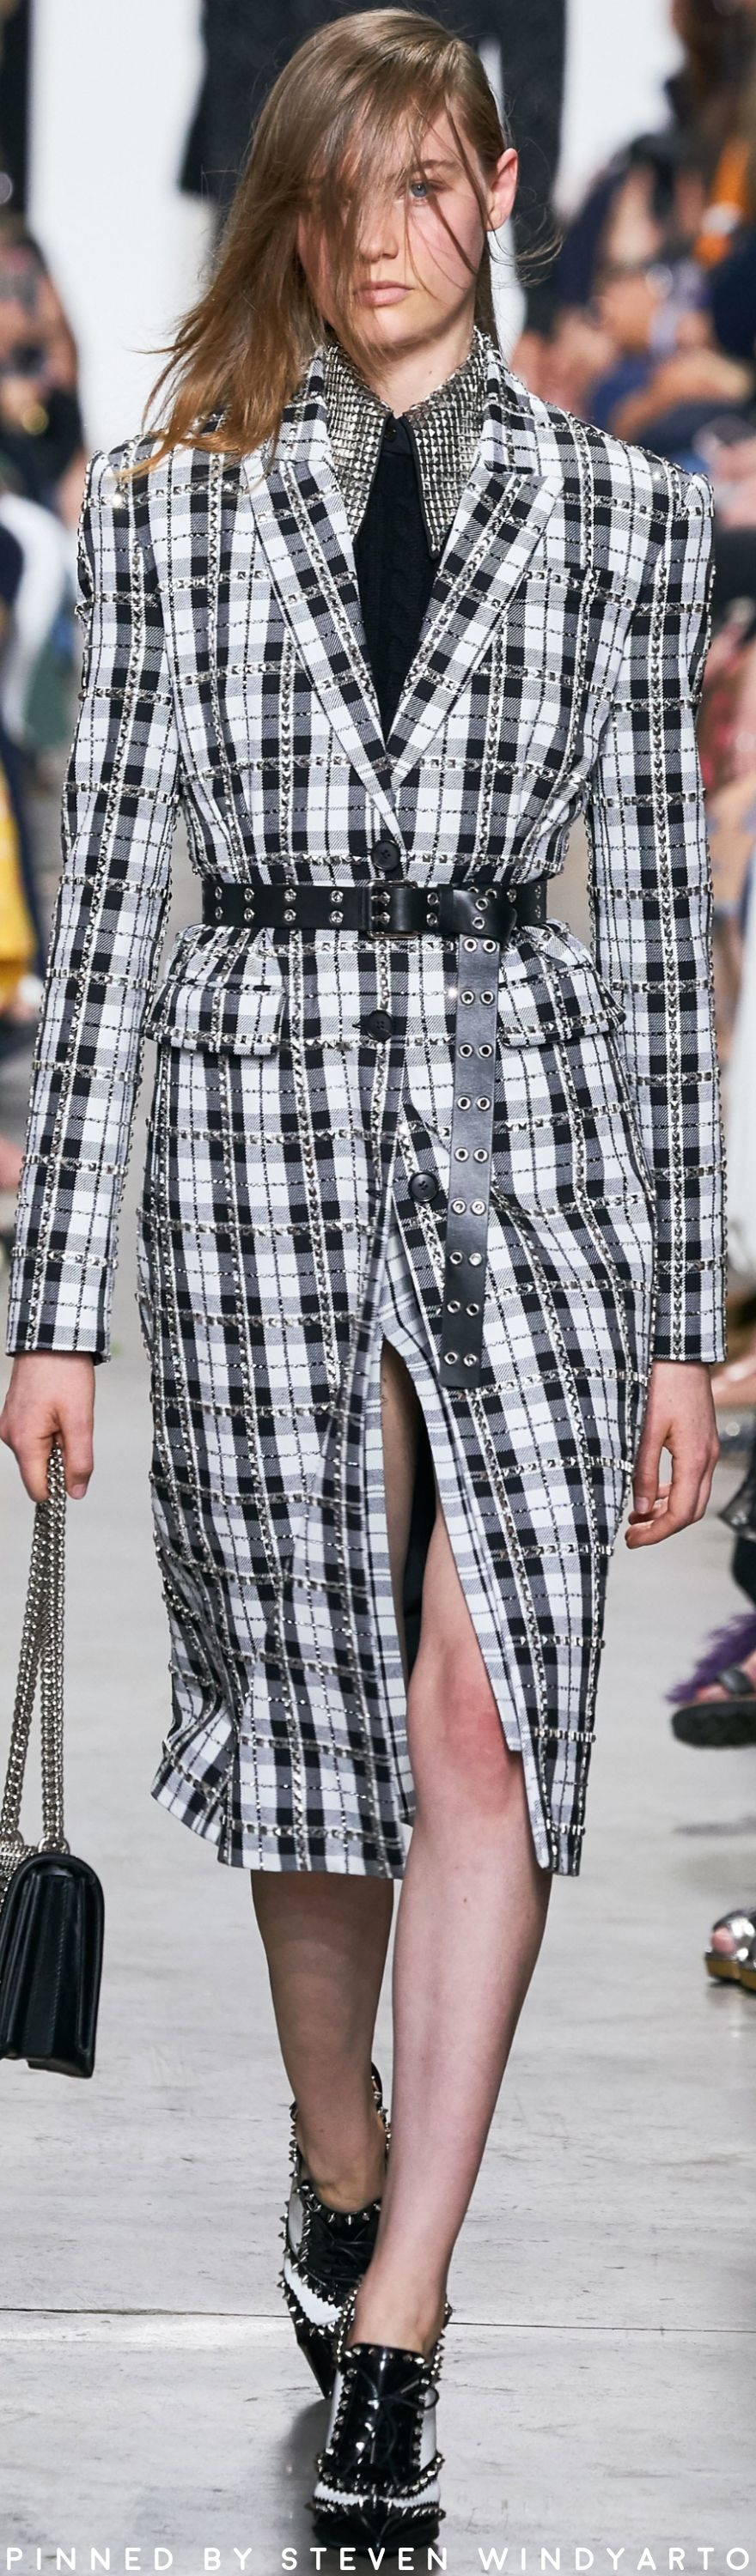 Michael Kors Collection Spring 2020 Ready-to-Wear Fashion Show